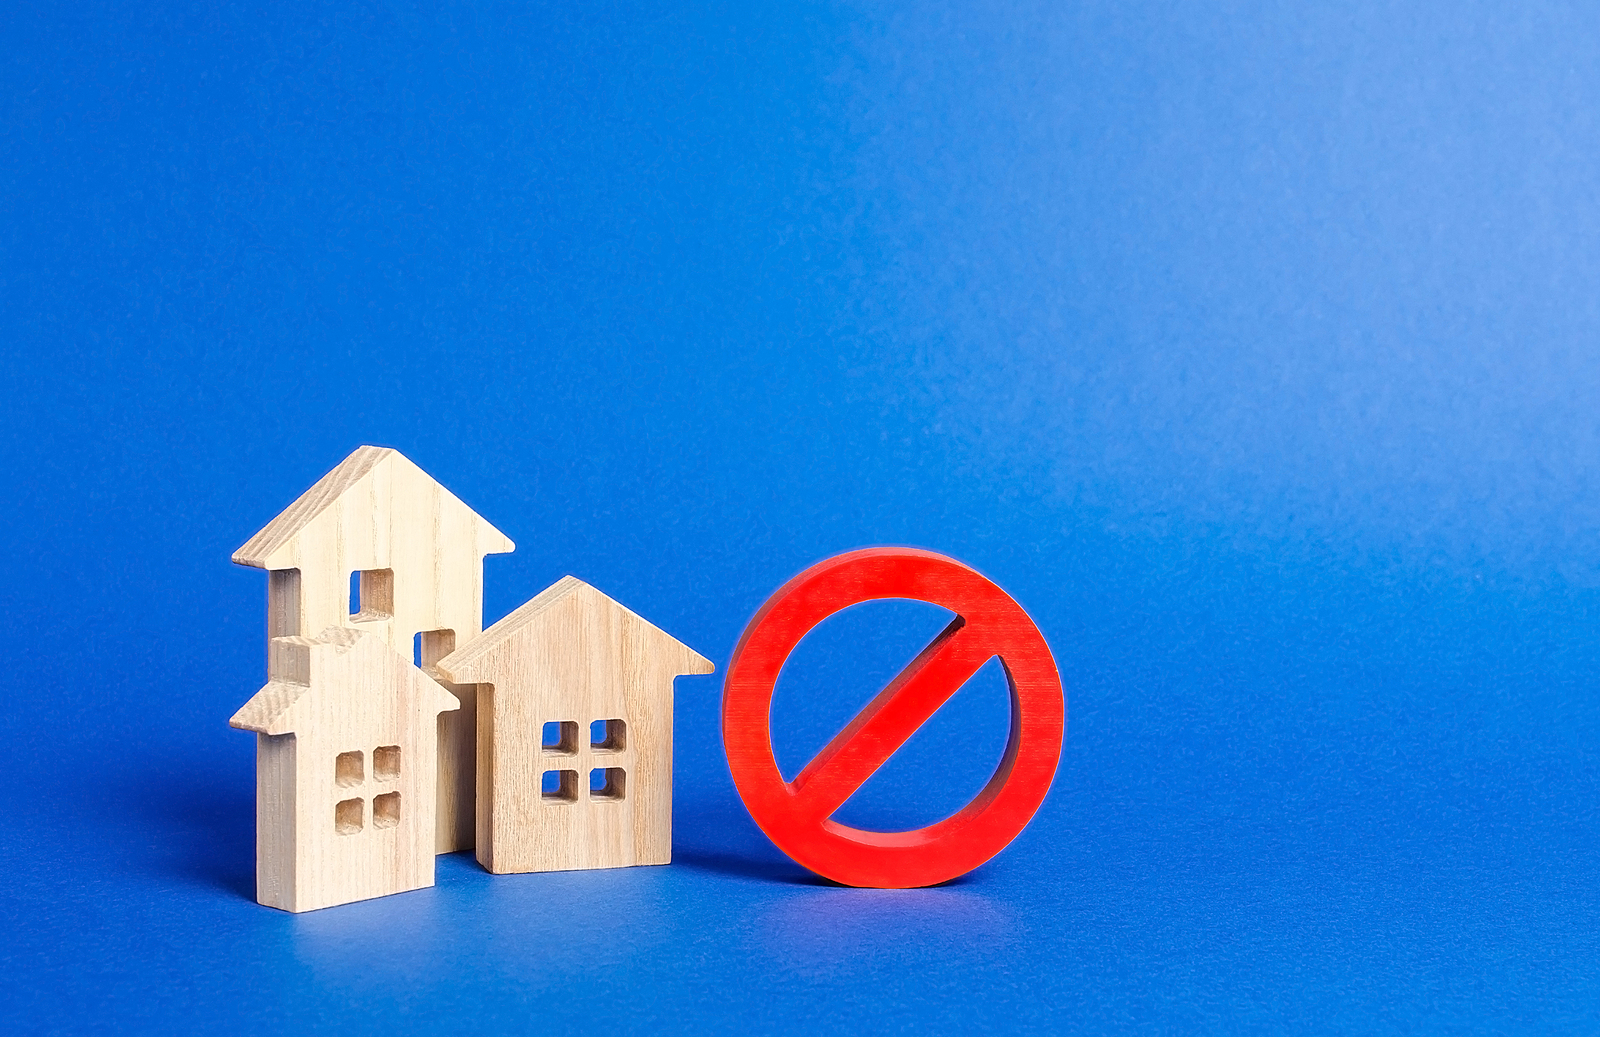 8 Mistakes to Avoid When Downsizing Your Home